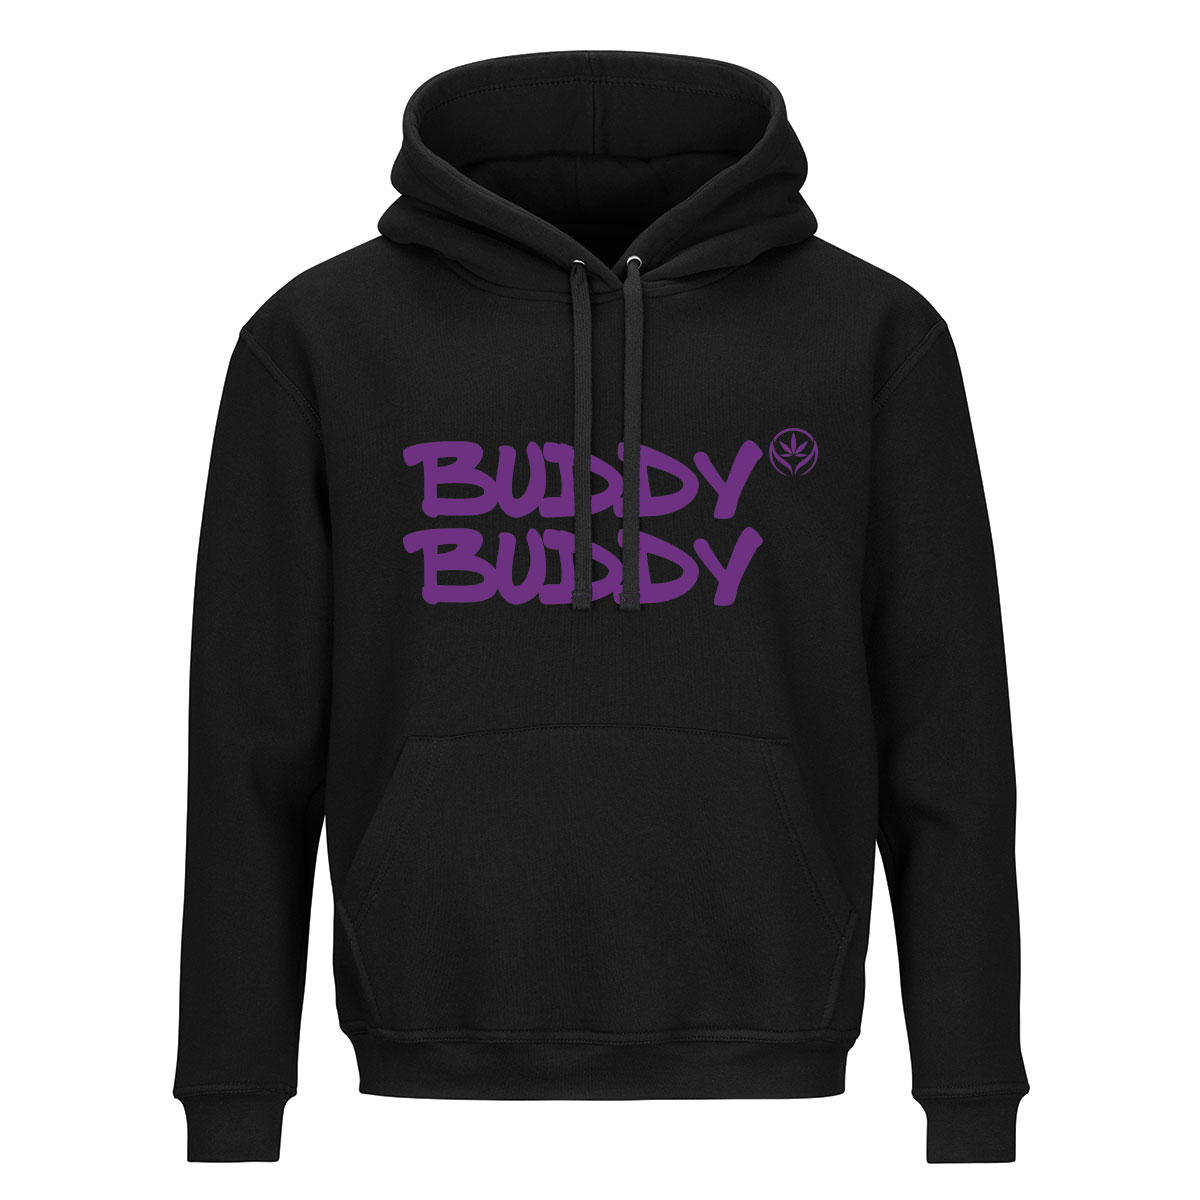 buddy-buddy-products-apparel-hoodie-black